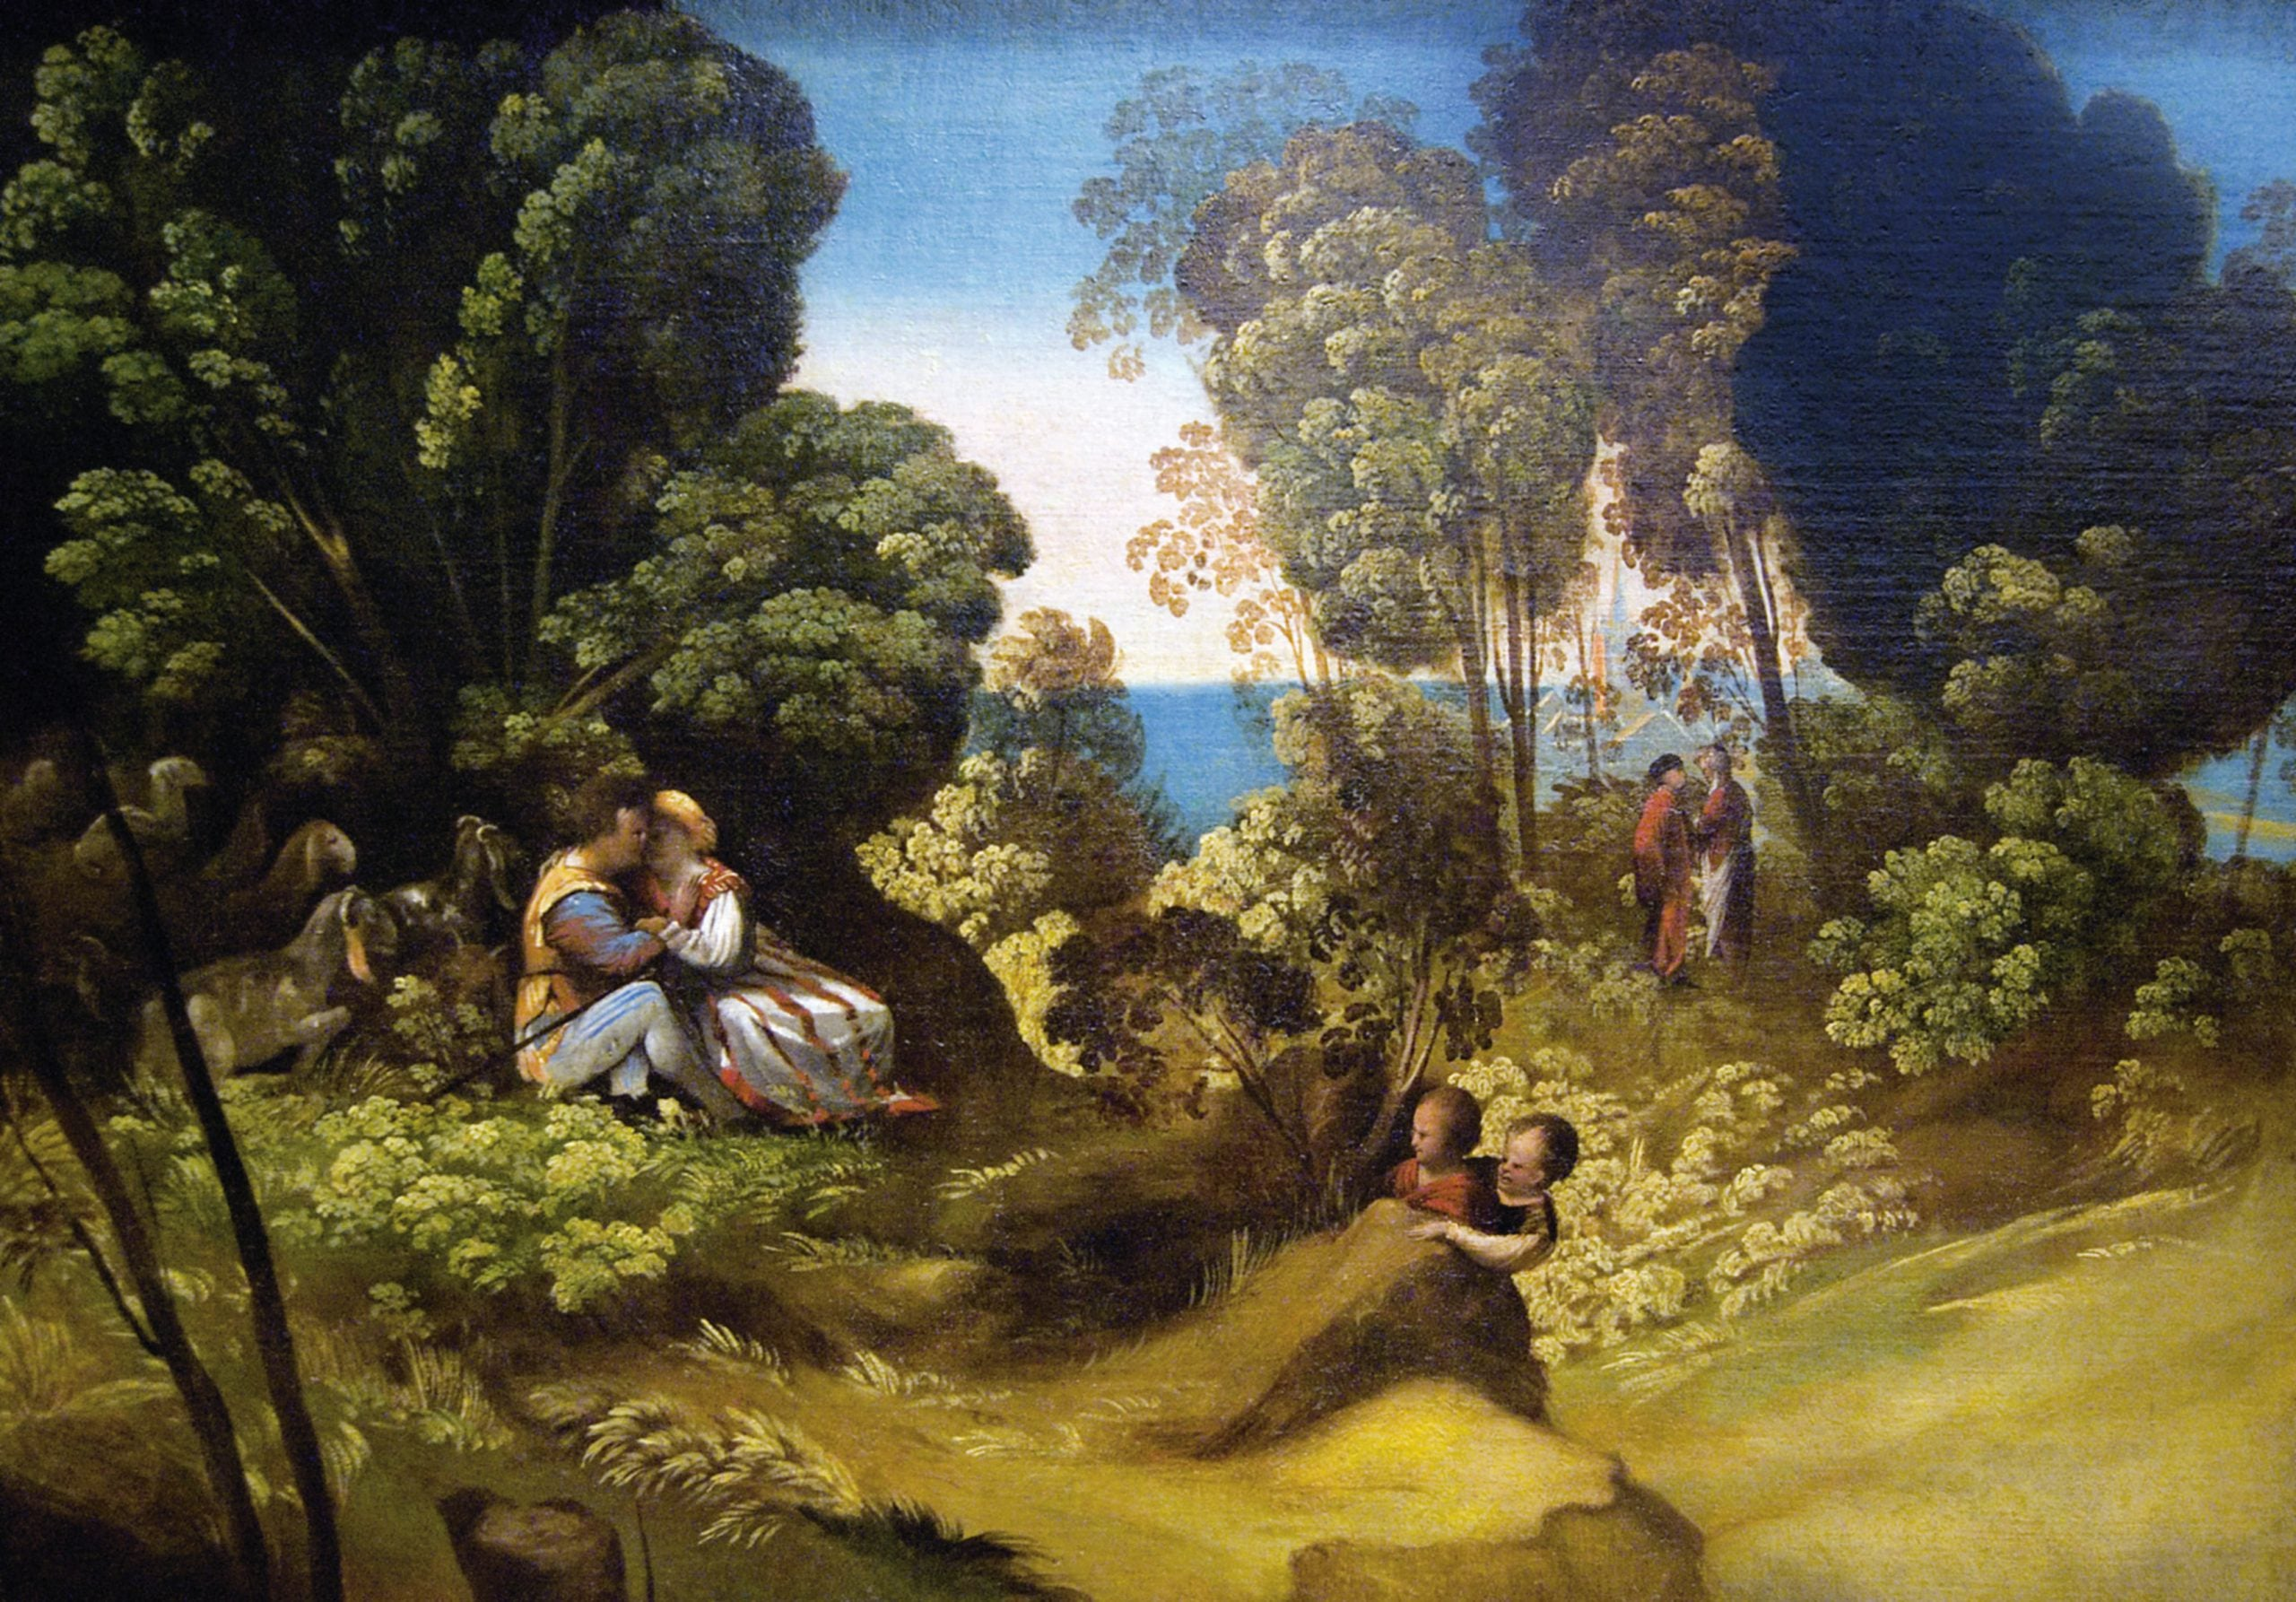 The witty landscapes of Dosso Dossi